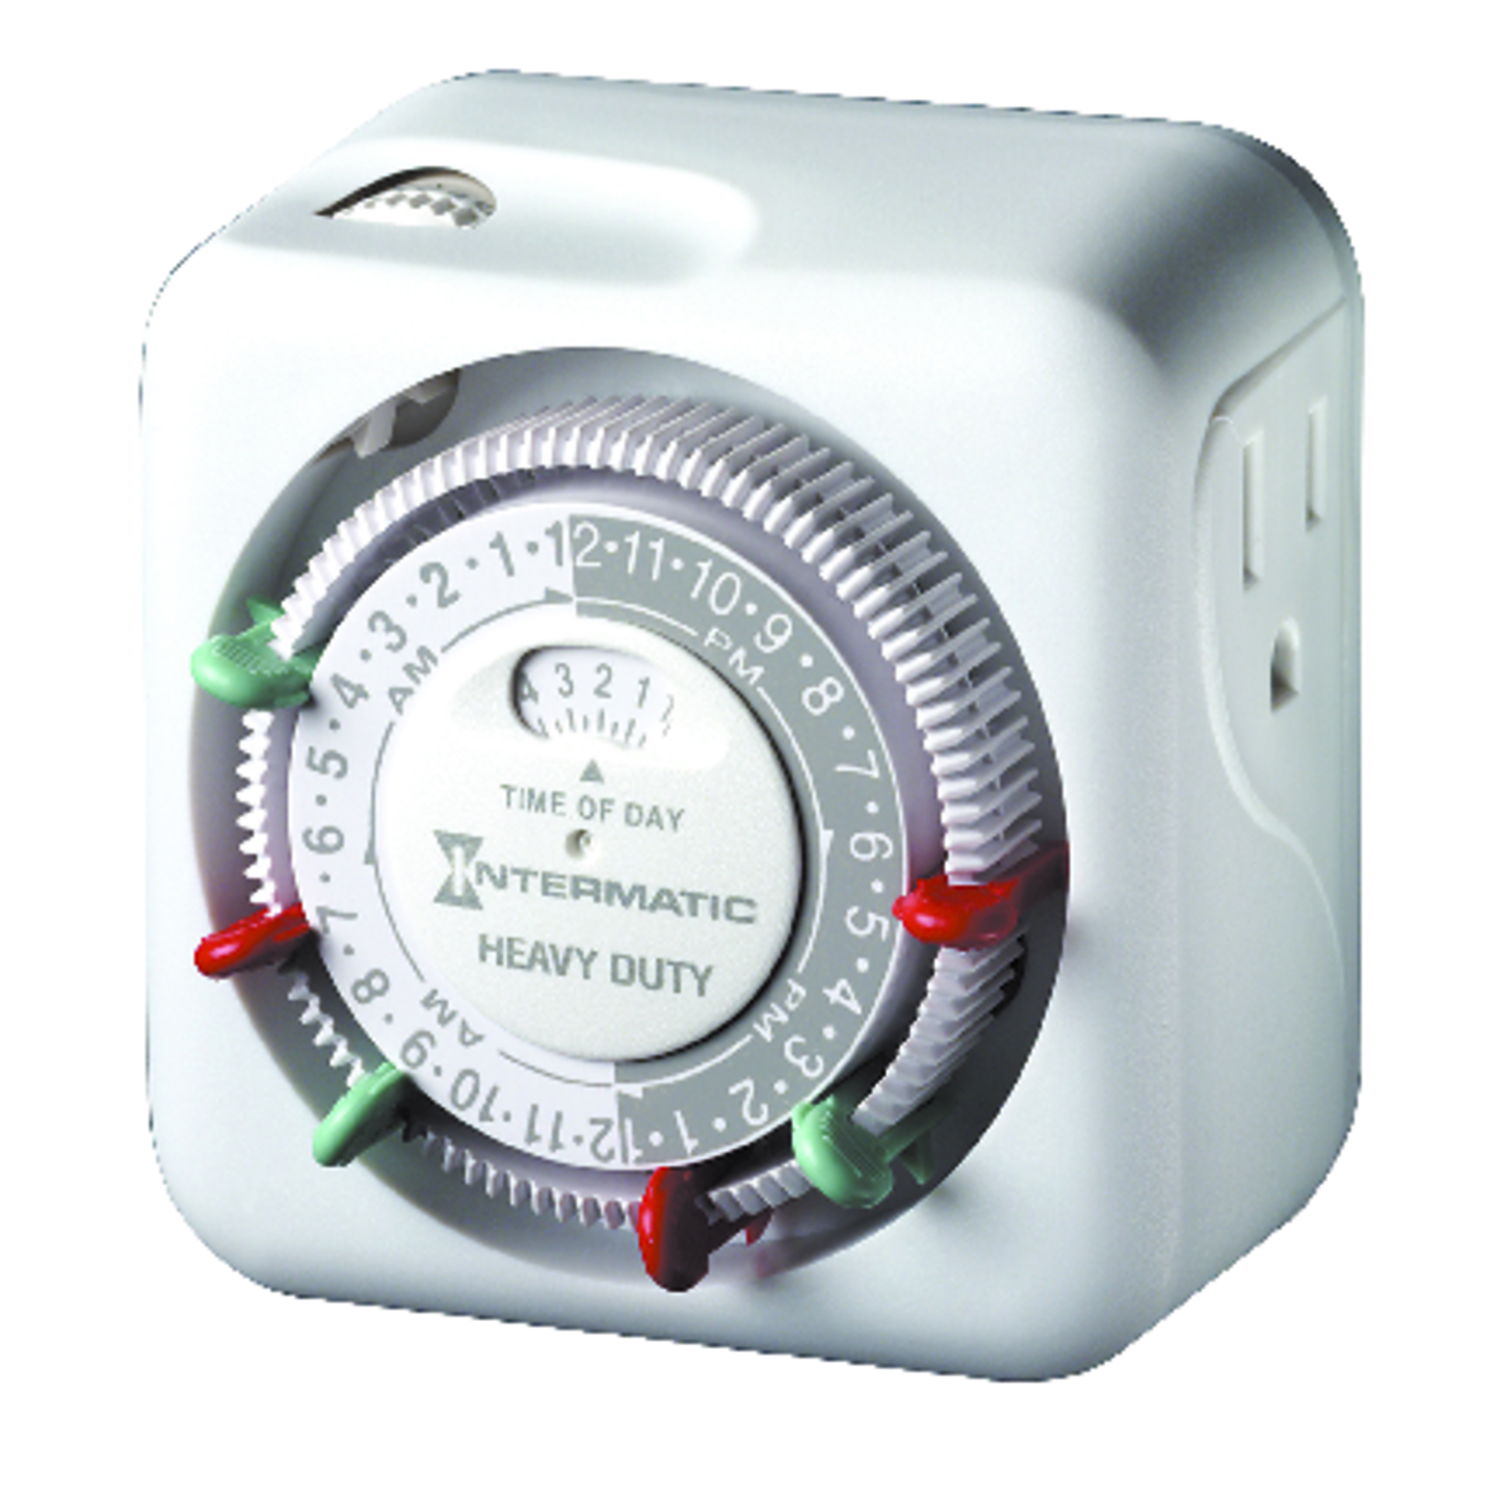 Intermatic Indoor Plug In Timer 125 volt White The TN311K premium heavy duty indoor 24-hour plug-in timer is simple to use and program. Simply set the on/off trippers into the desired time slots and then plug the light into the timer and the timer into the wall outlet. It is ideal for lamps and appliances. You can schedule 2 ON/OFF events at 15-minute intervals. CSA certified. 15 Amp, 125 VAC, 60Hz.